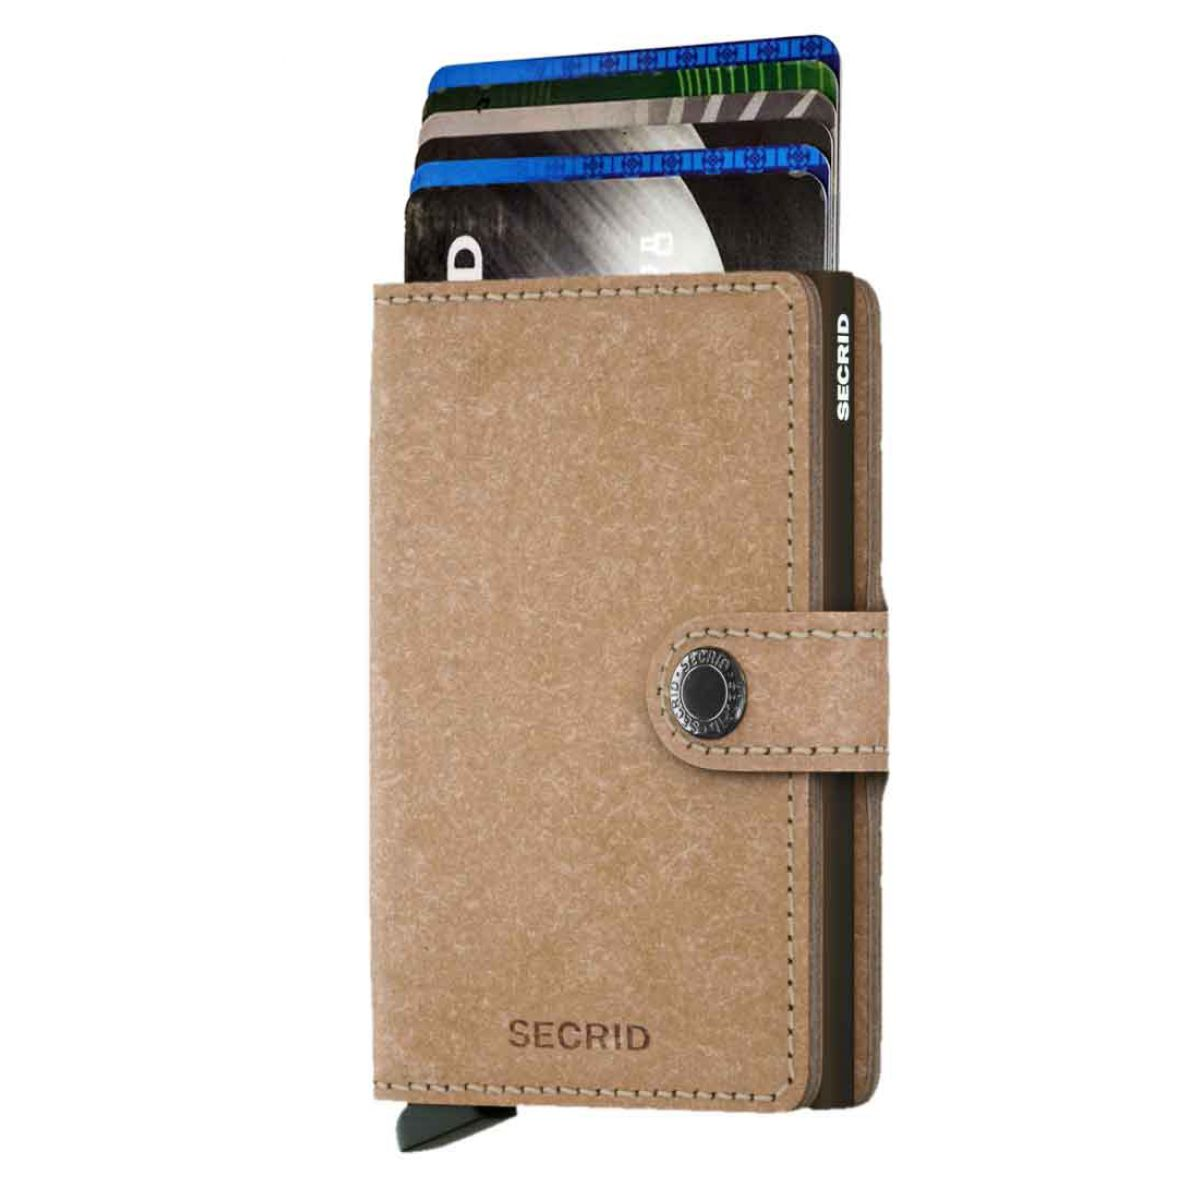 16555f082c9 Secrid mini wallet leather recycled natural - SECRID - product code ...